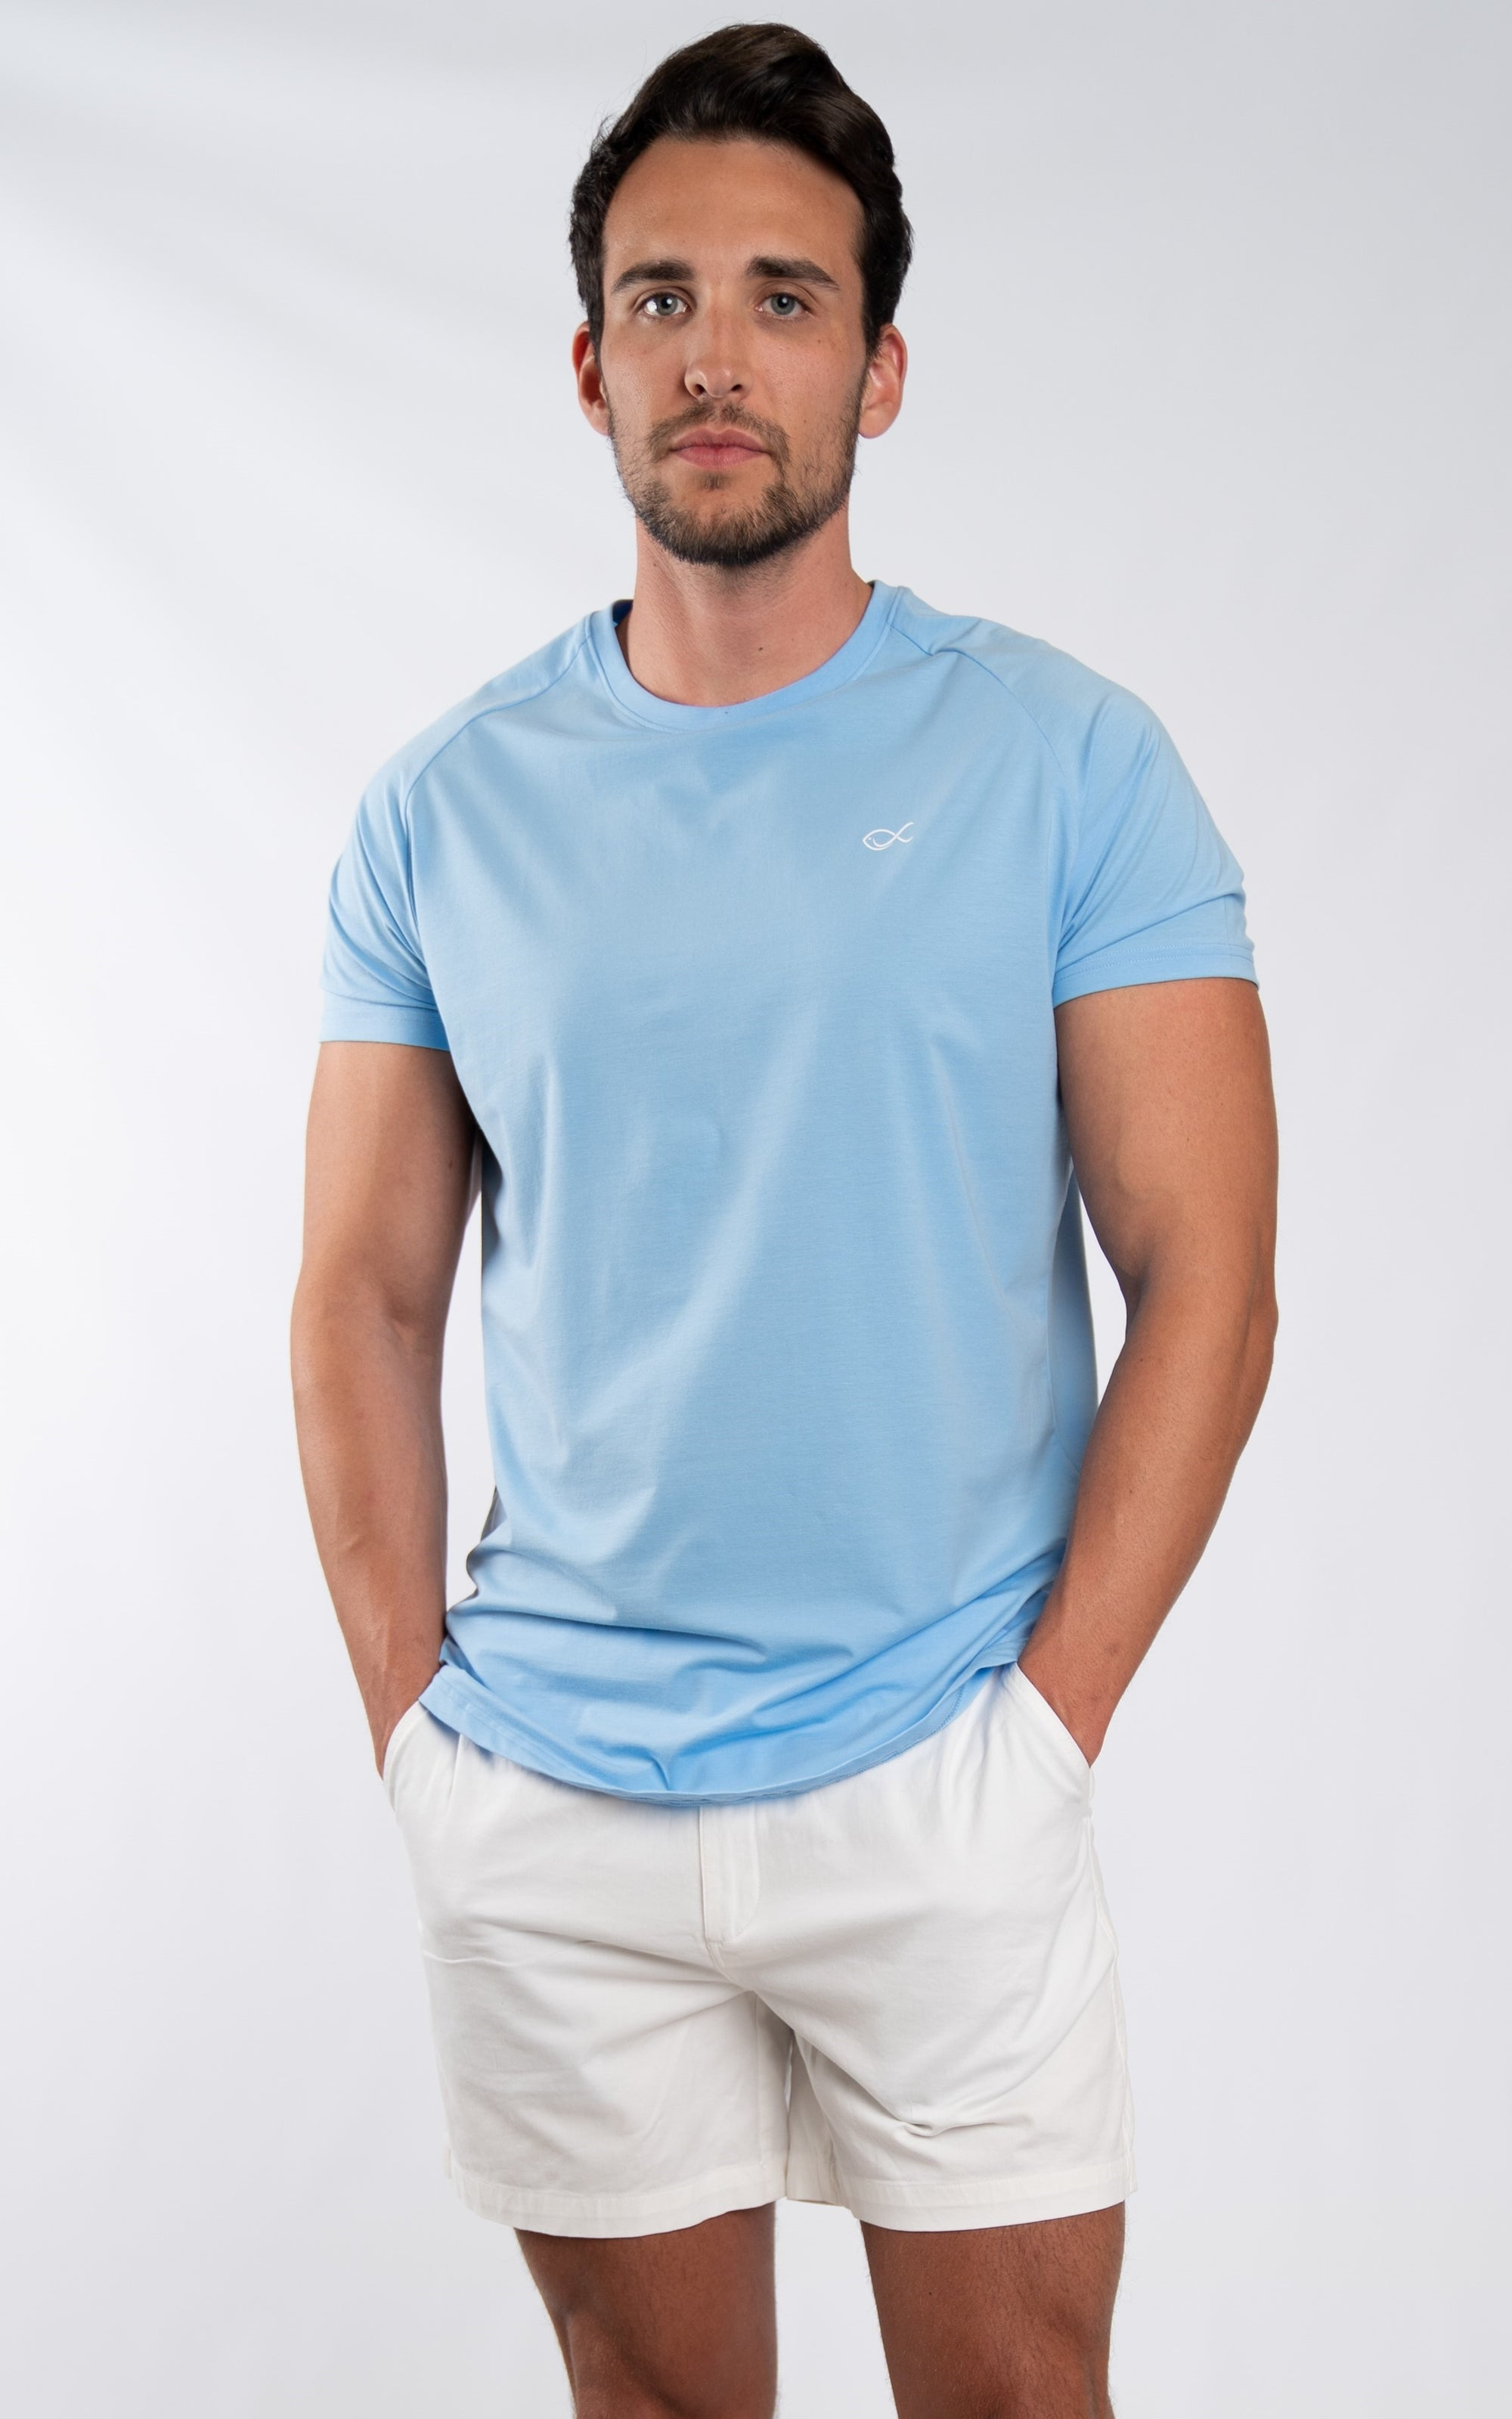 Men's Comfort Tee in Airy Blue - Southern Athletica